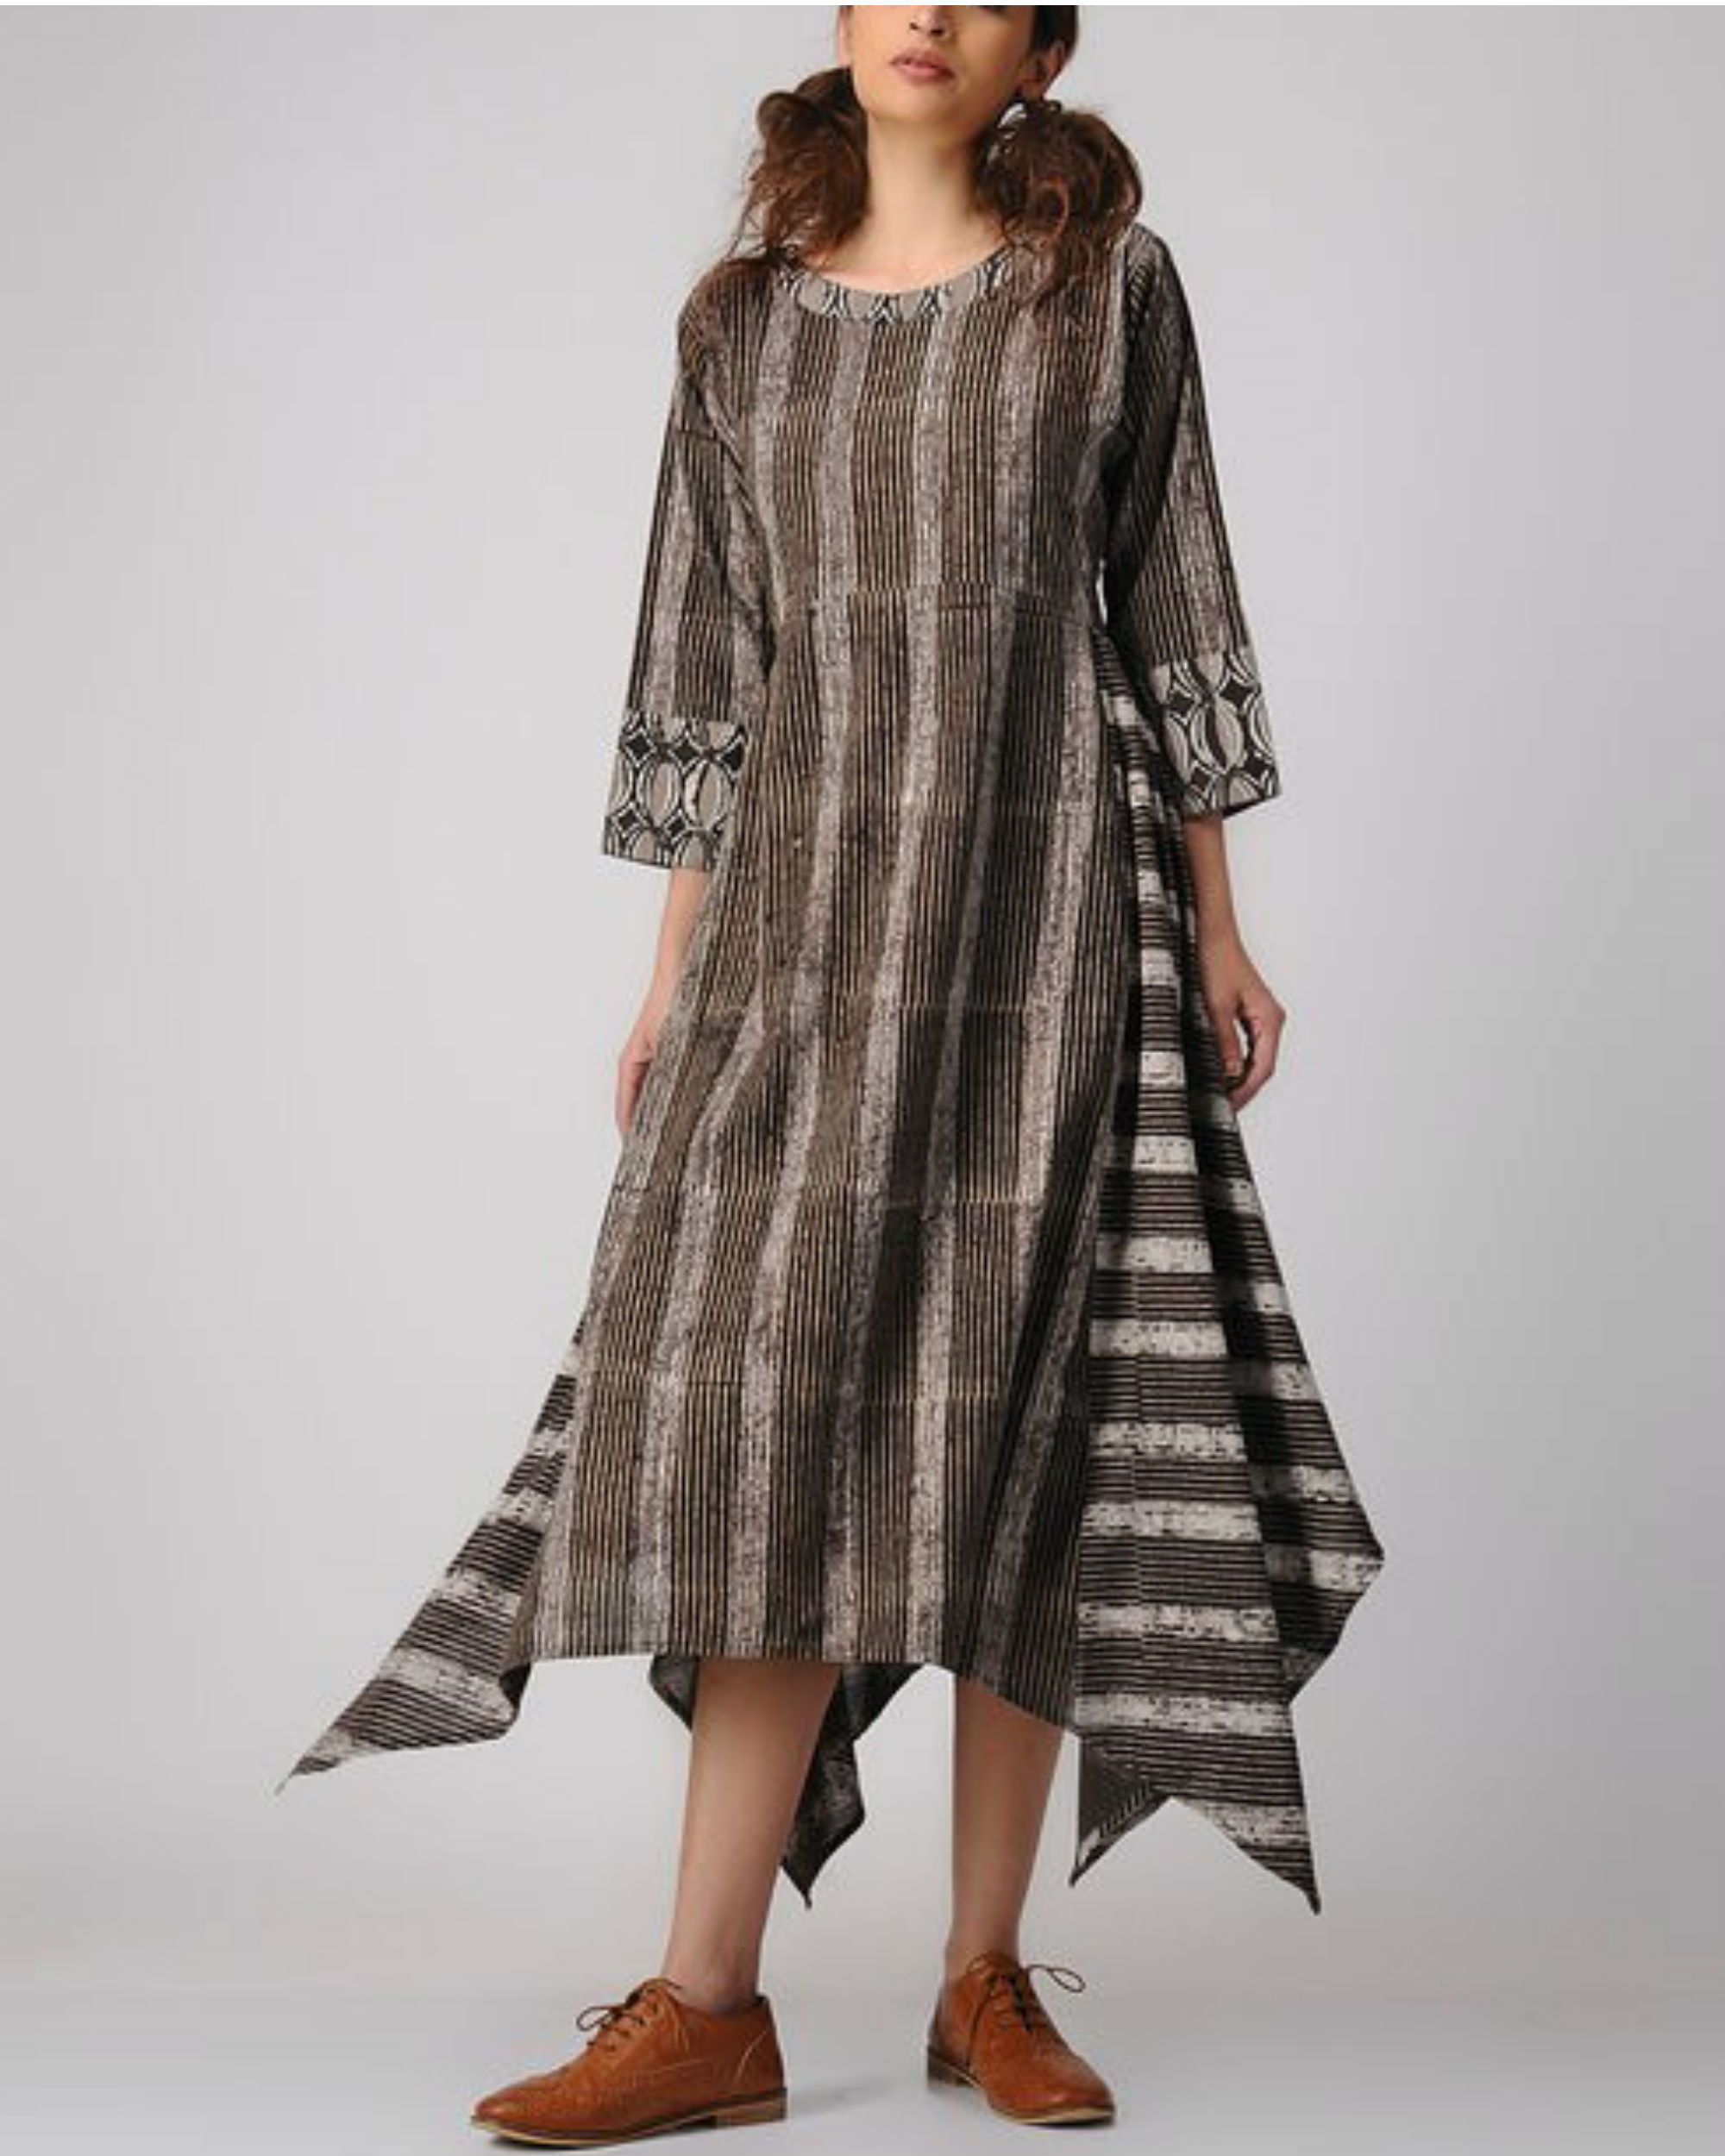 Wooden asymmetric dress